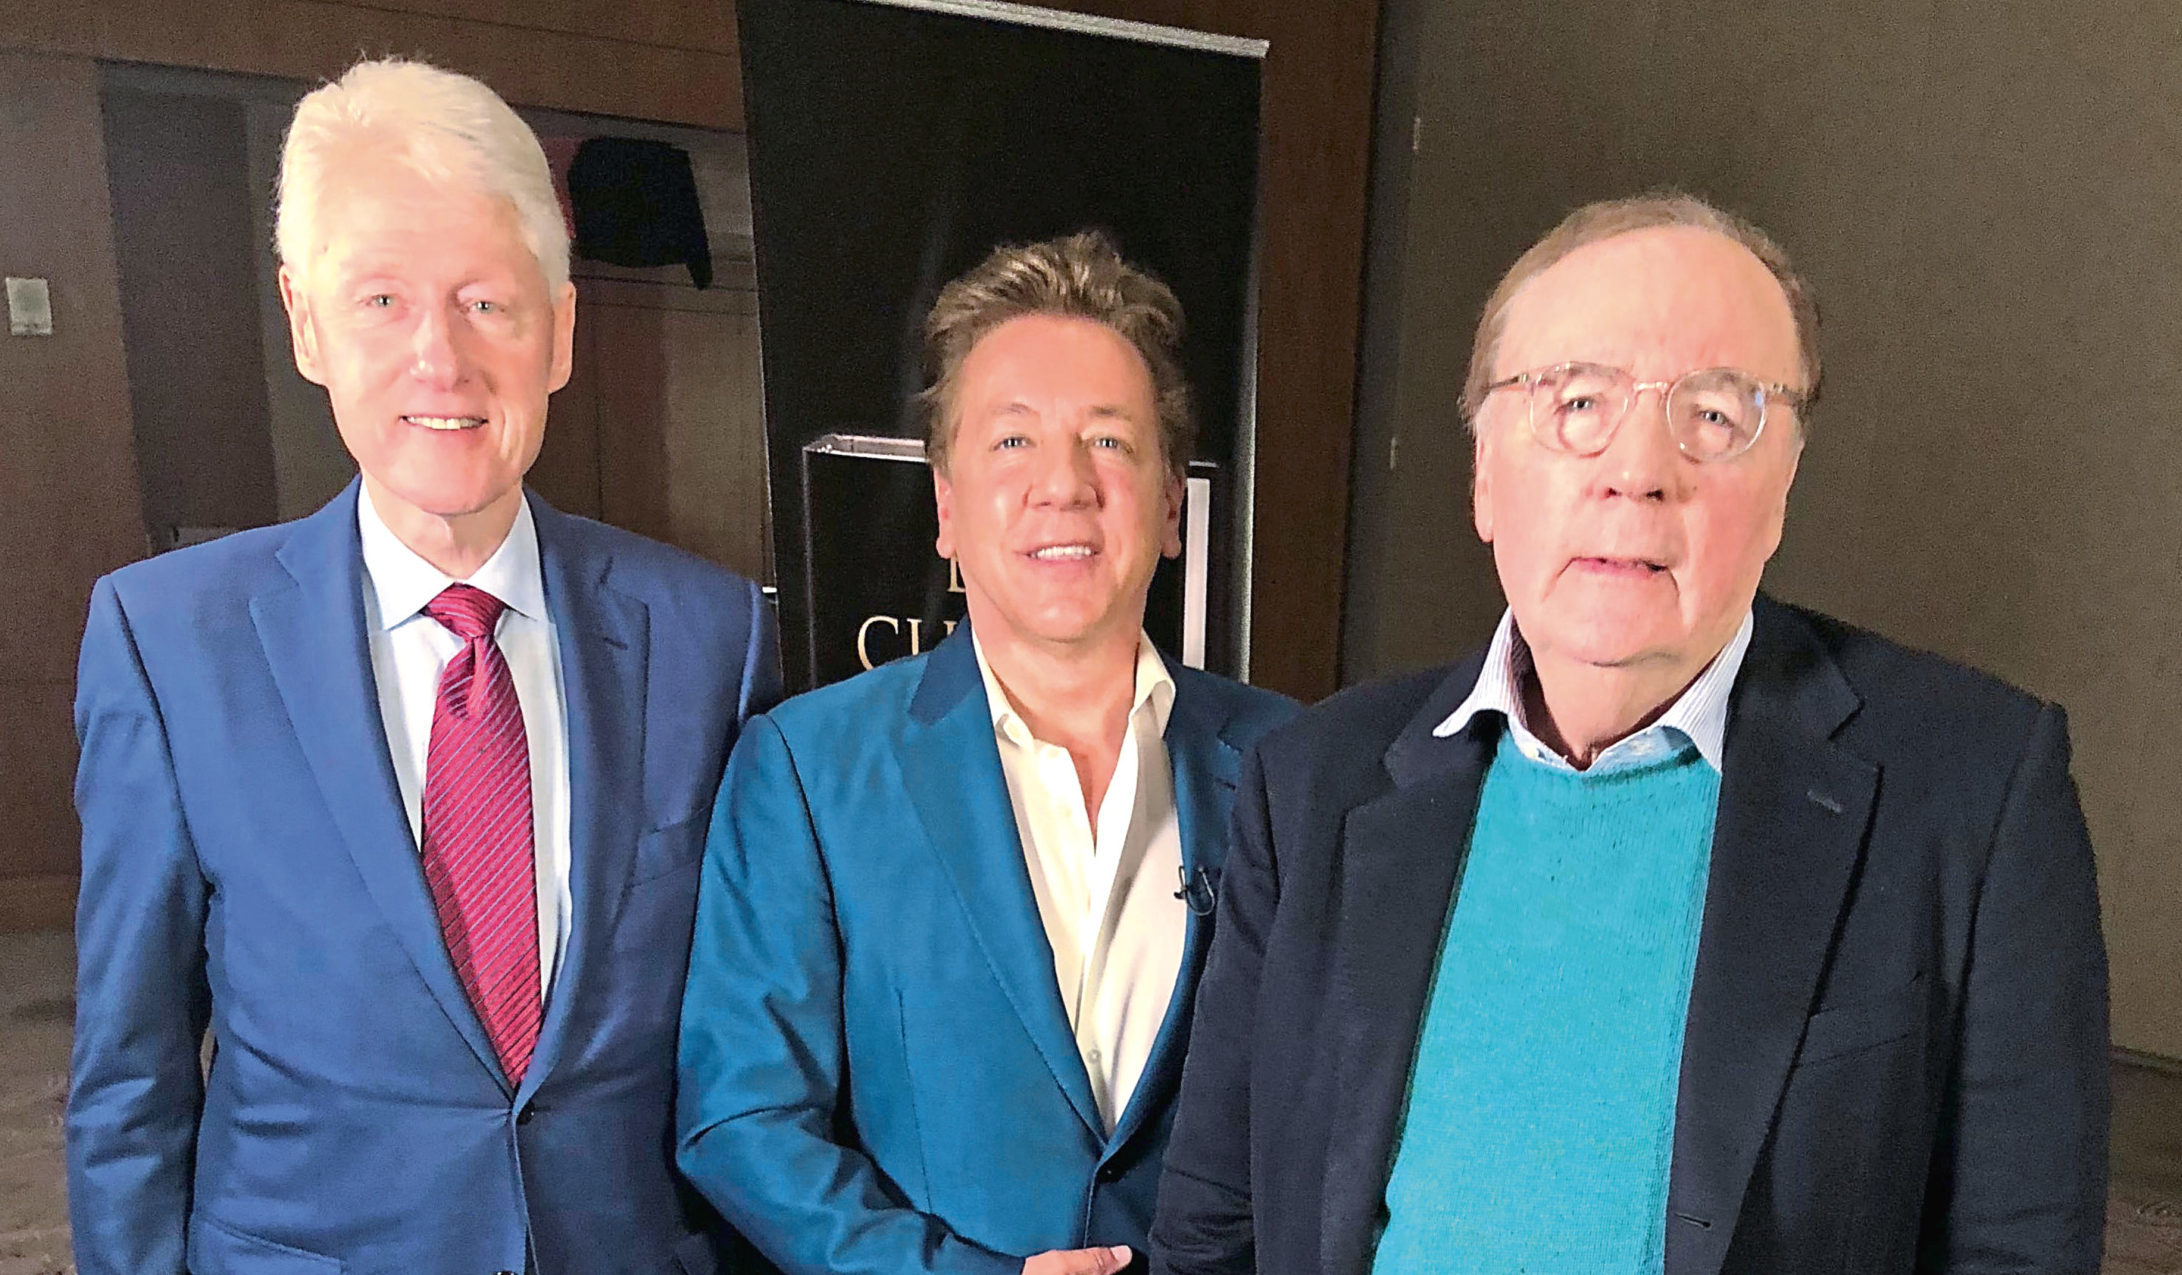 Ross, centre, with Bill Clinton and The President Is Missing co-author James Patterson